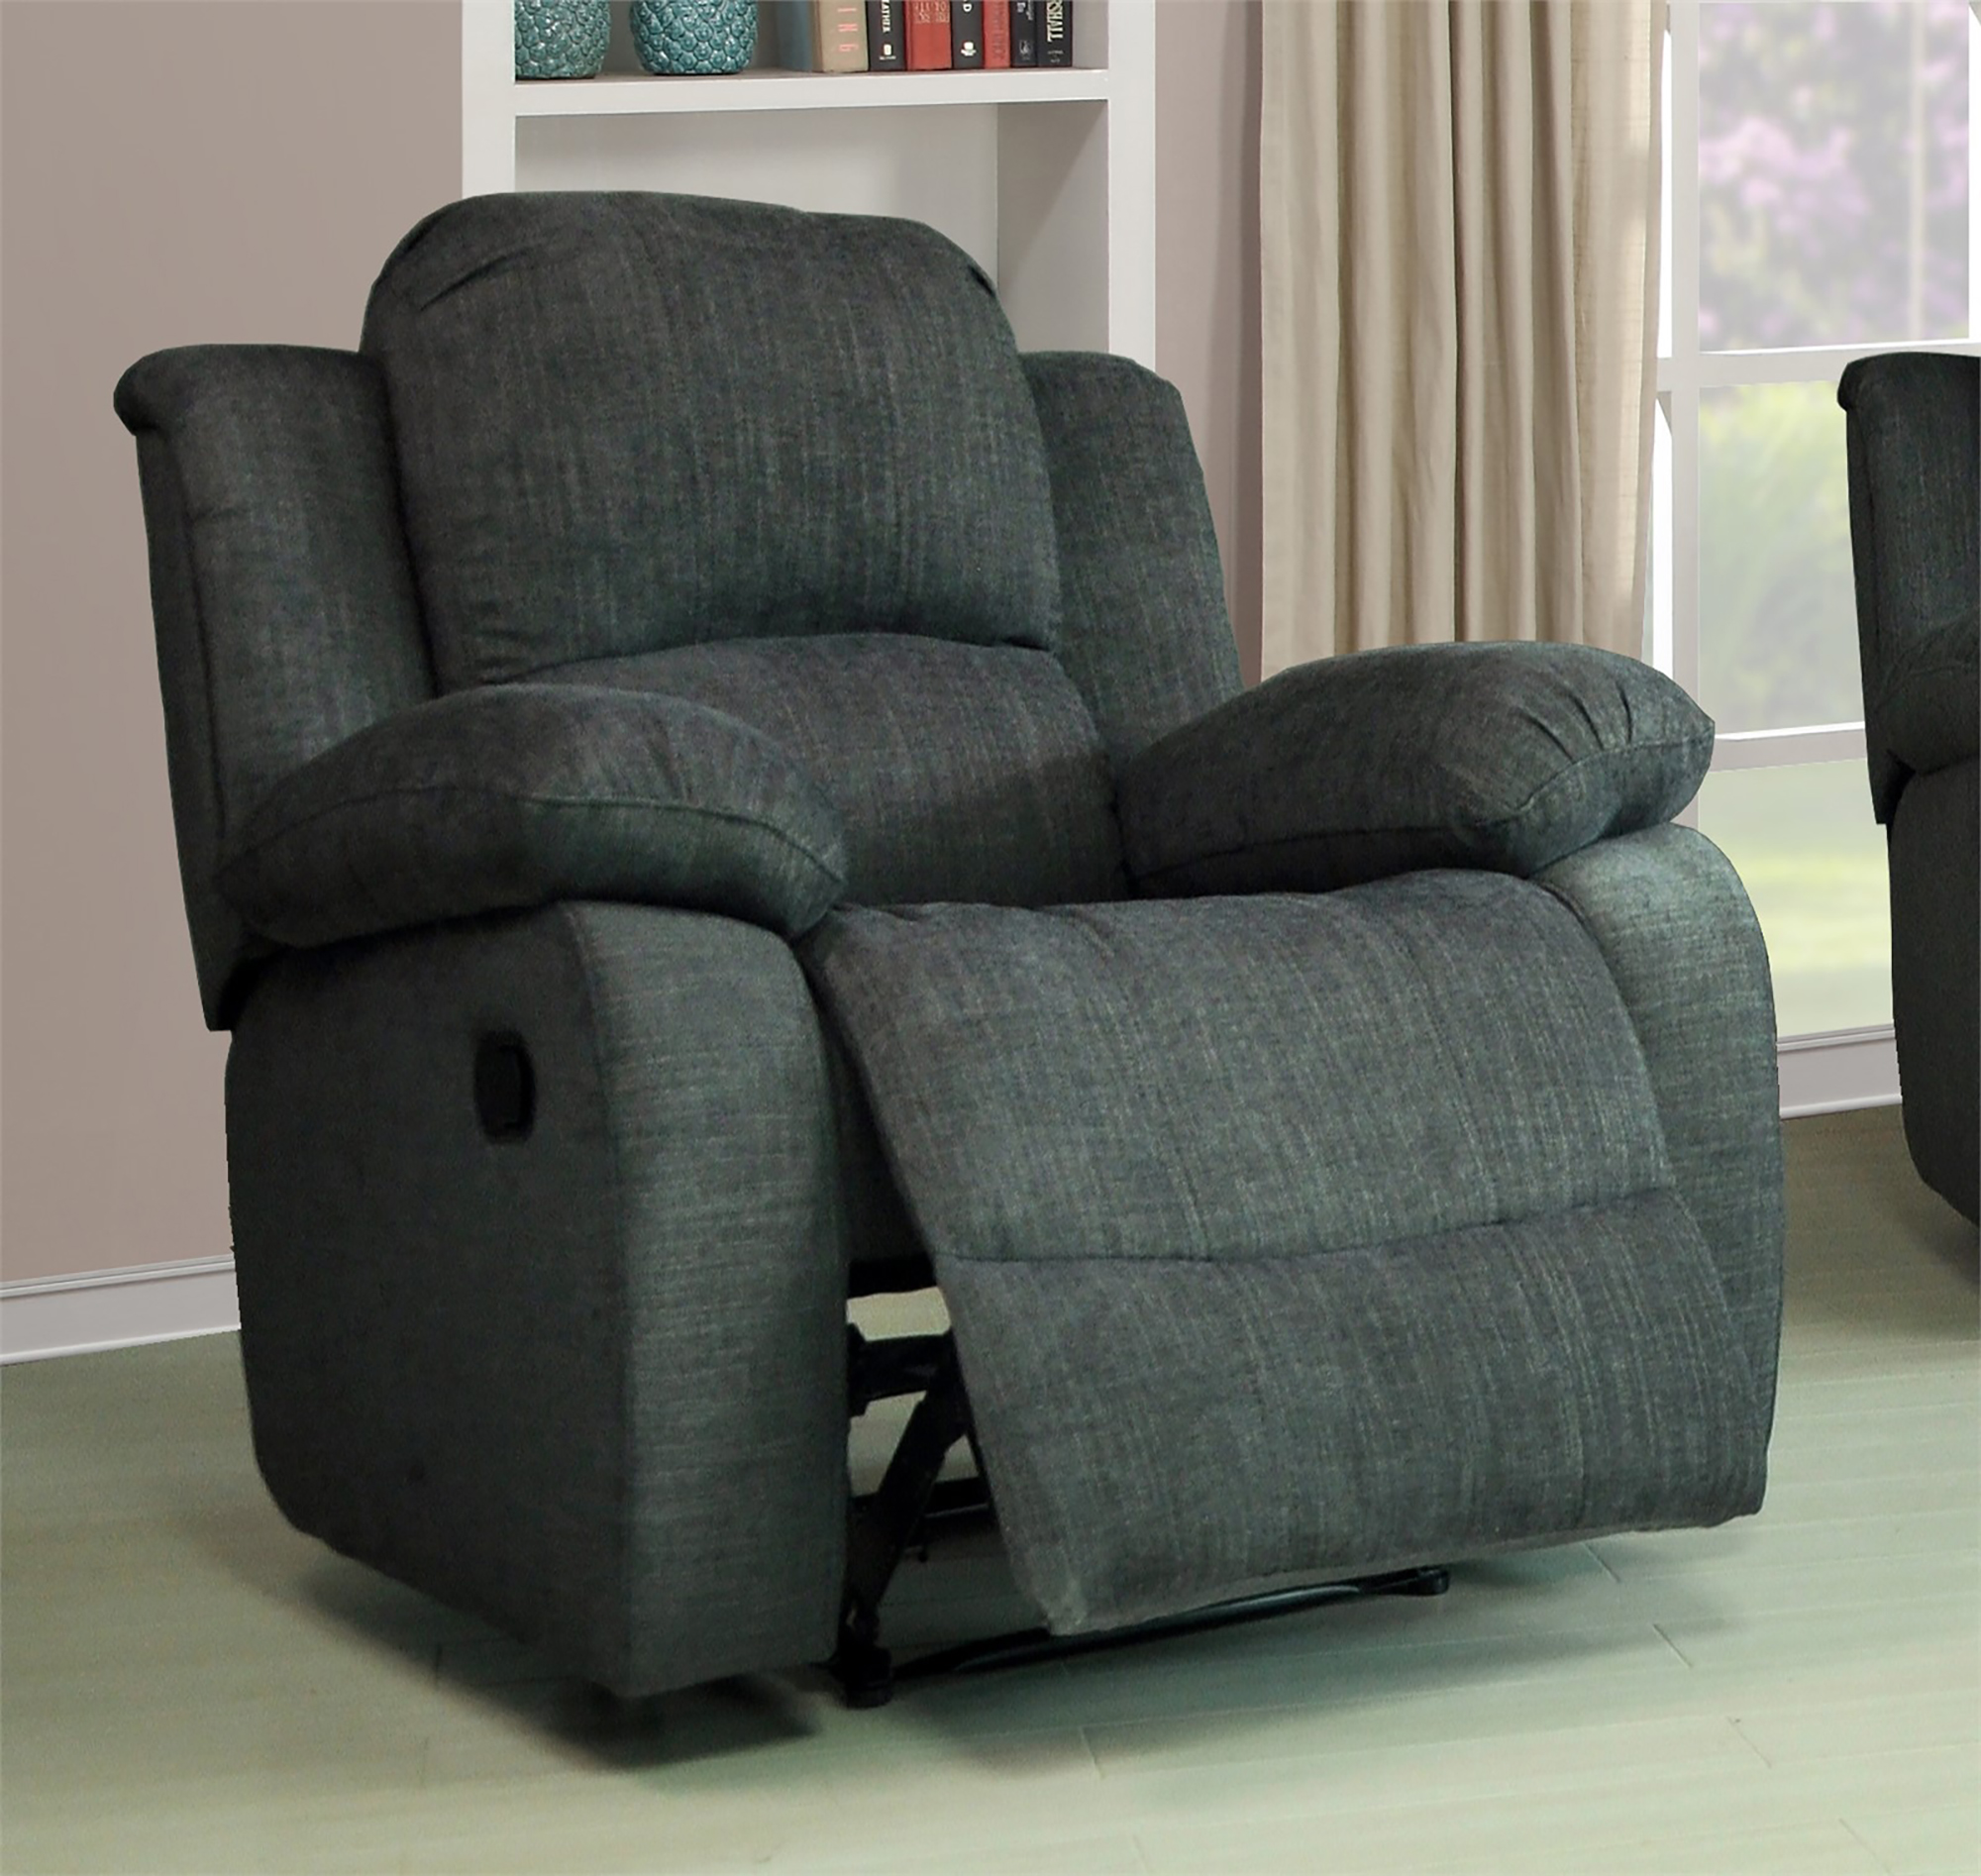 Modern Lazy Boy Valencia 1 Seater Roxy Fabric Recliner Sofa Dark Grey